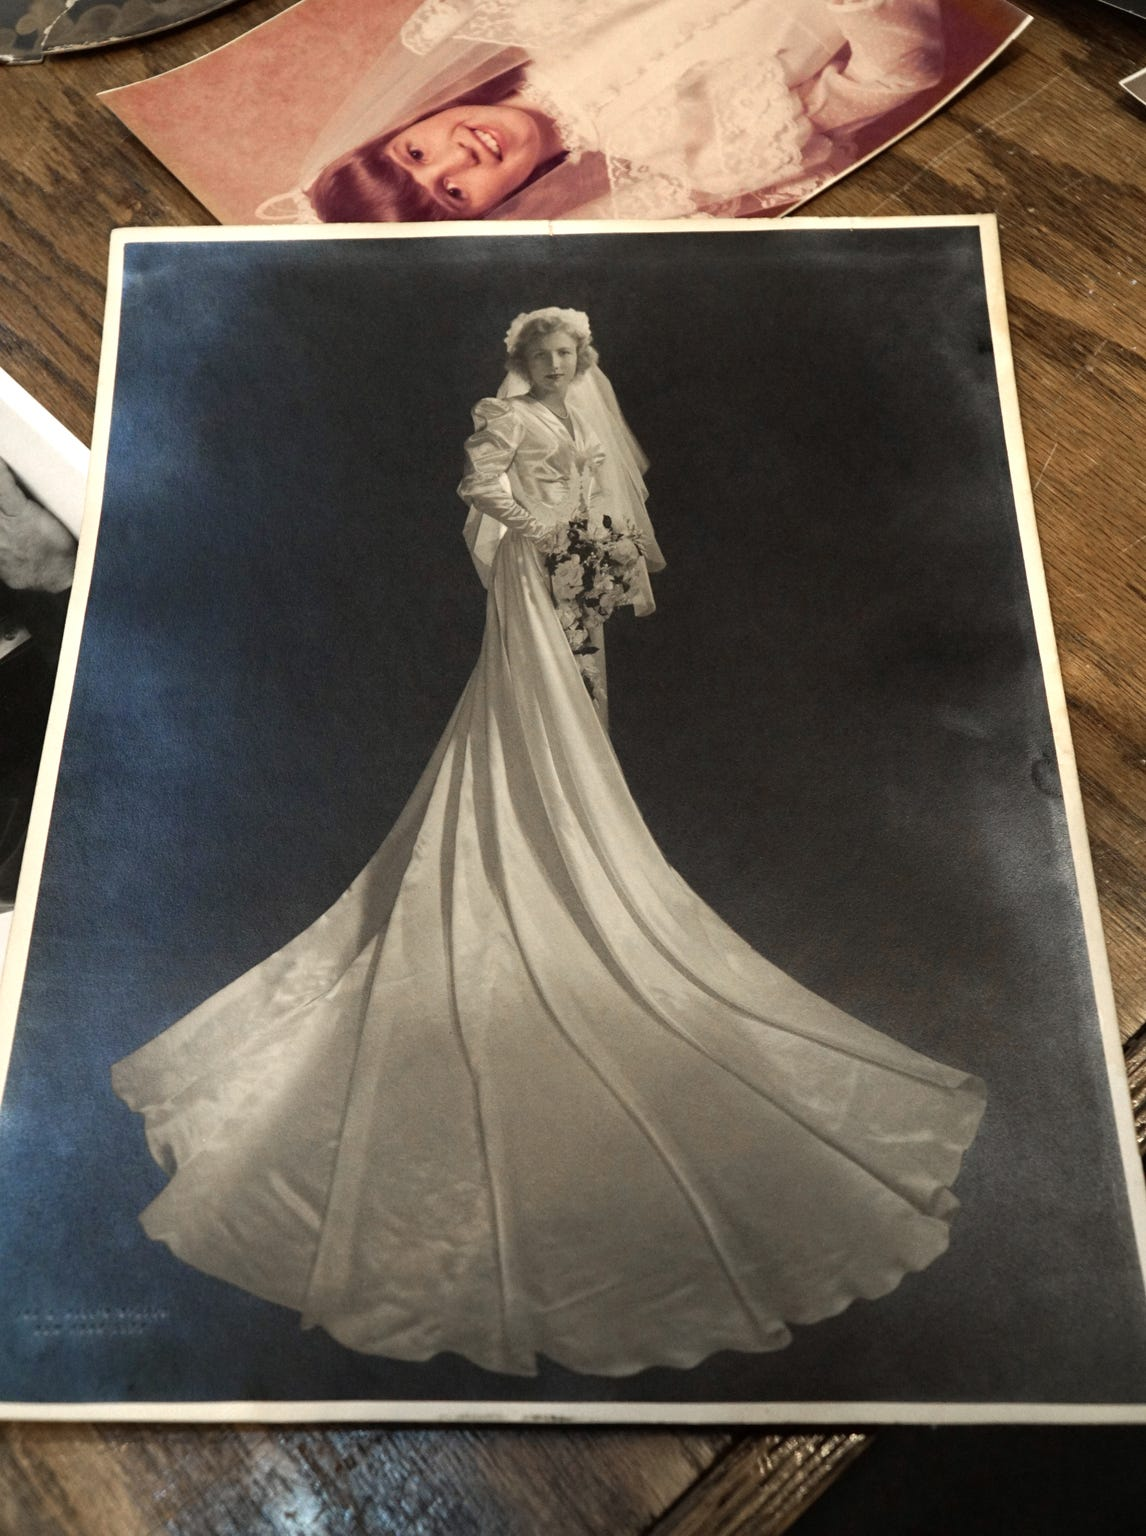 This bridal portrait is Eckley's favorite of all those left over the years at Frame Works.